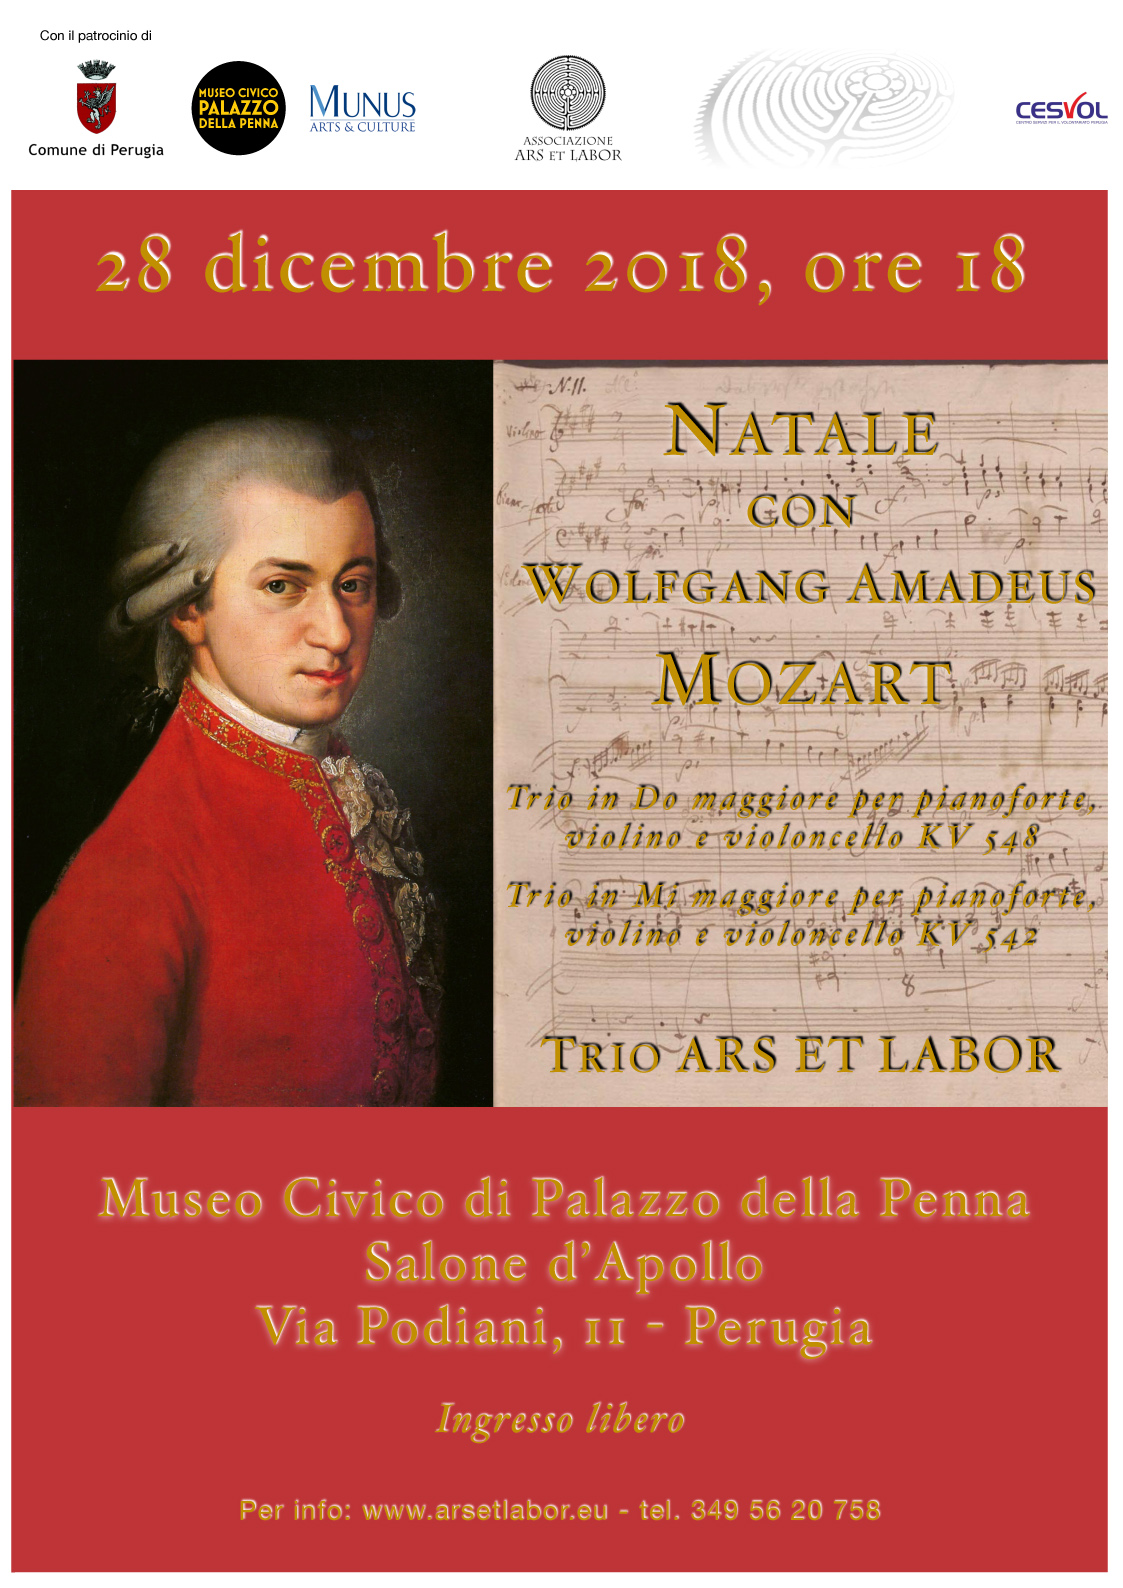 Natale con Wolfgang Amadeus Mozart